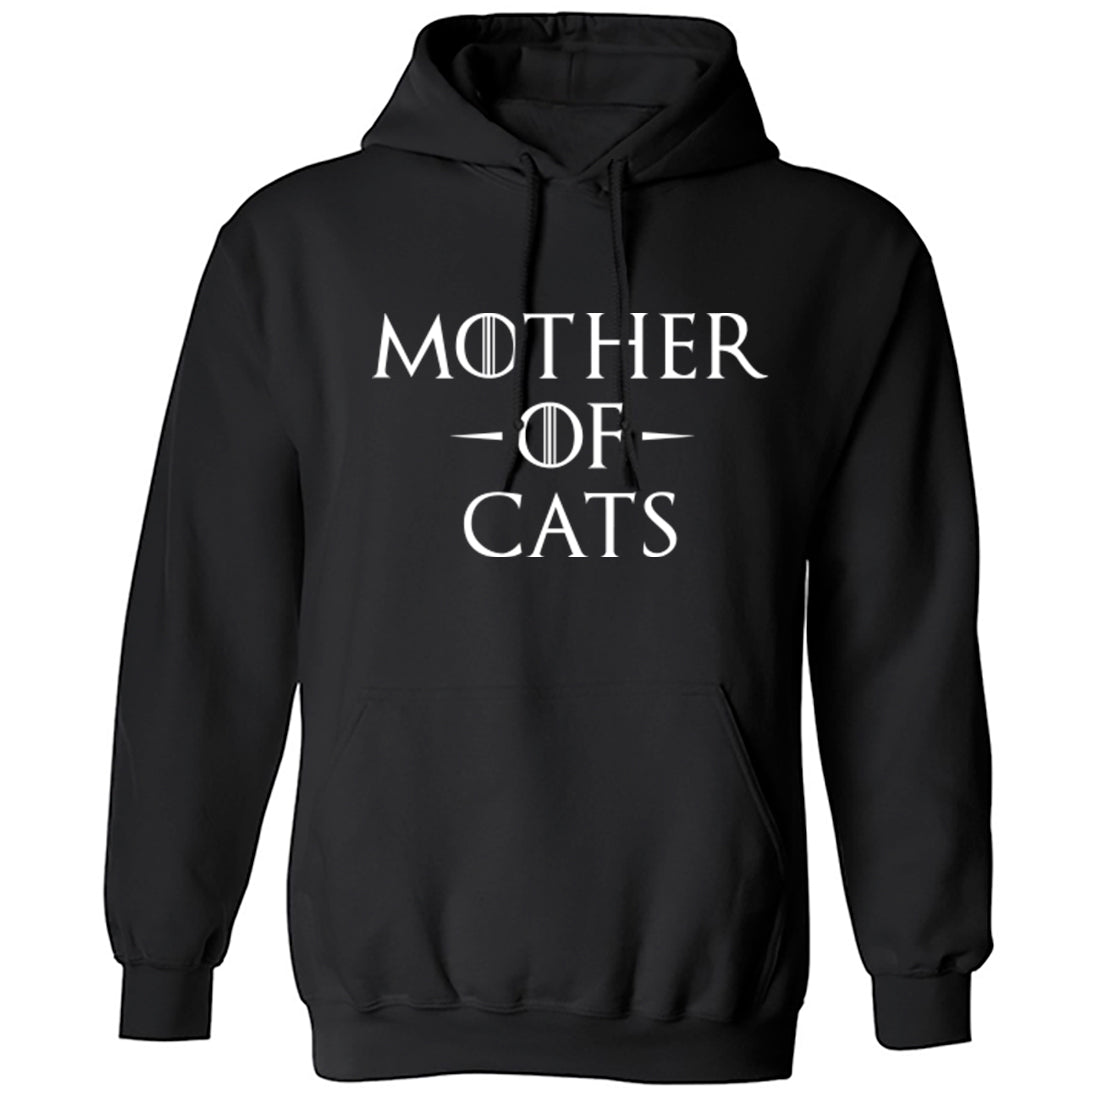 Mother Of Cats Unisex Hoodie K1184 - Illustrated Identity Ltd.